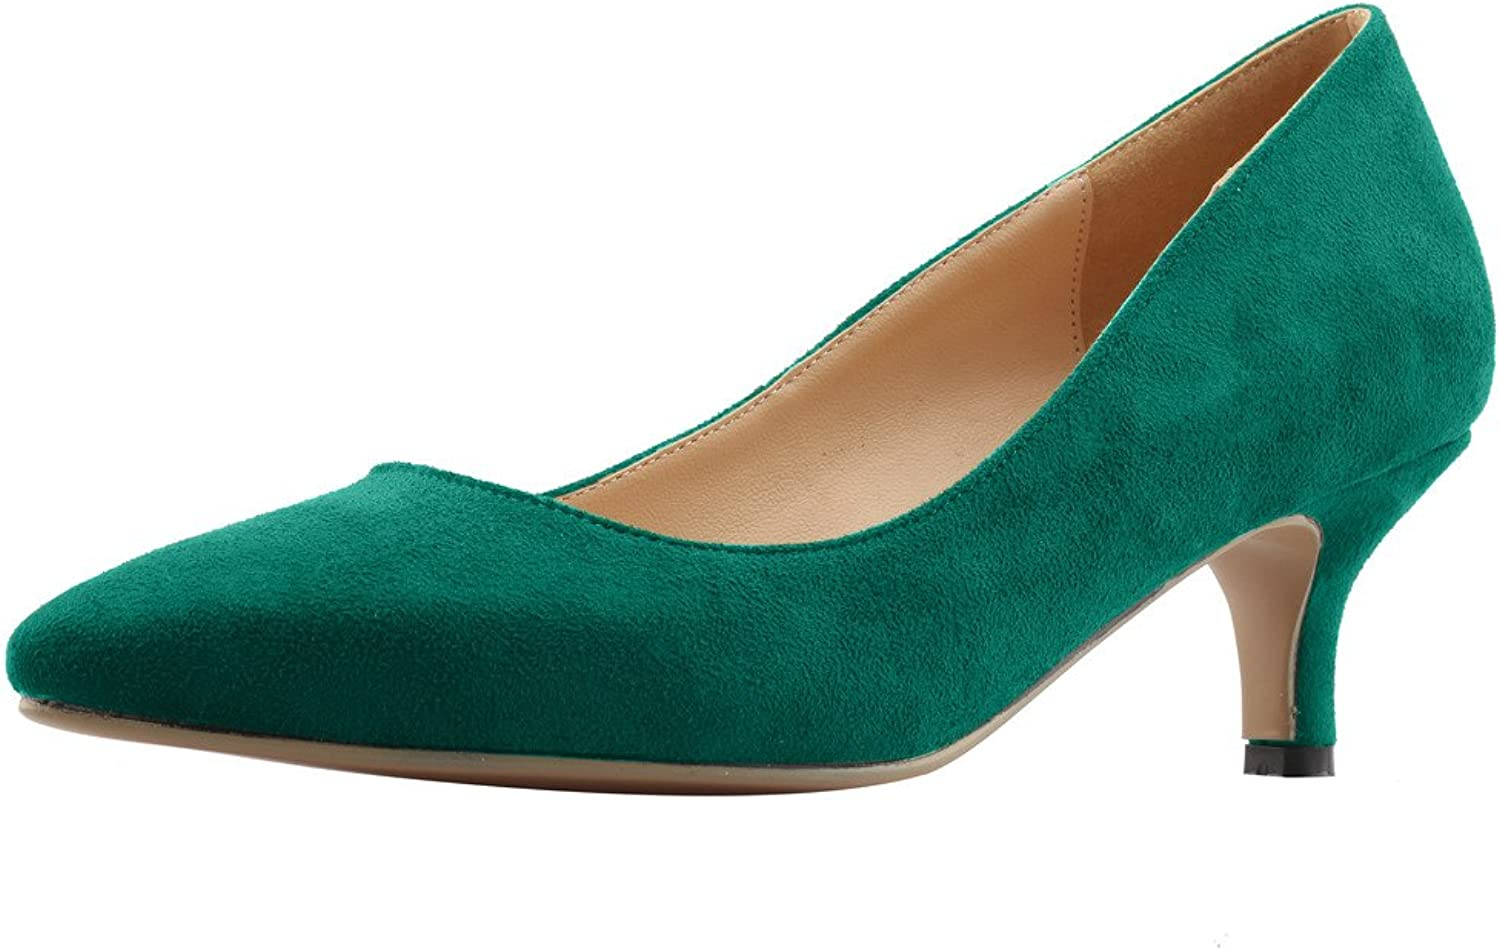 Calaier Womens Cahalfway Pointed-Toe 5.5CM Stiletto Slip-on Pumps shoes